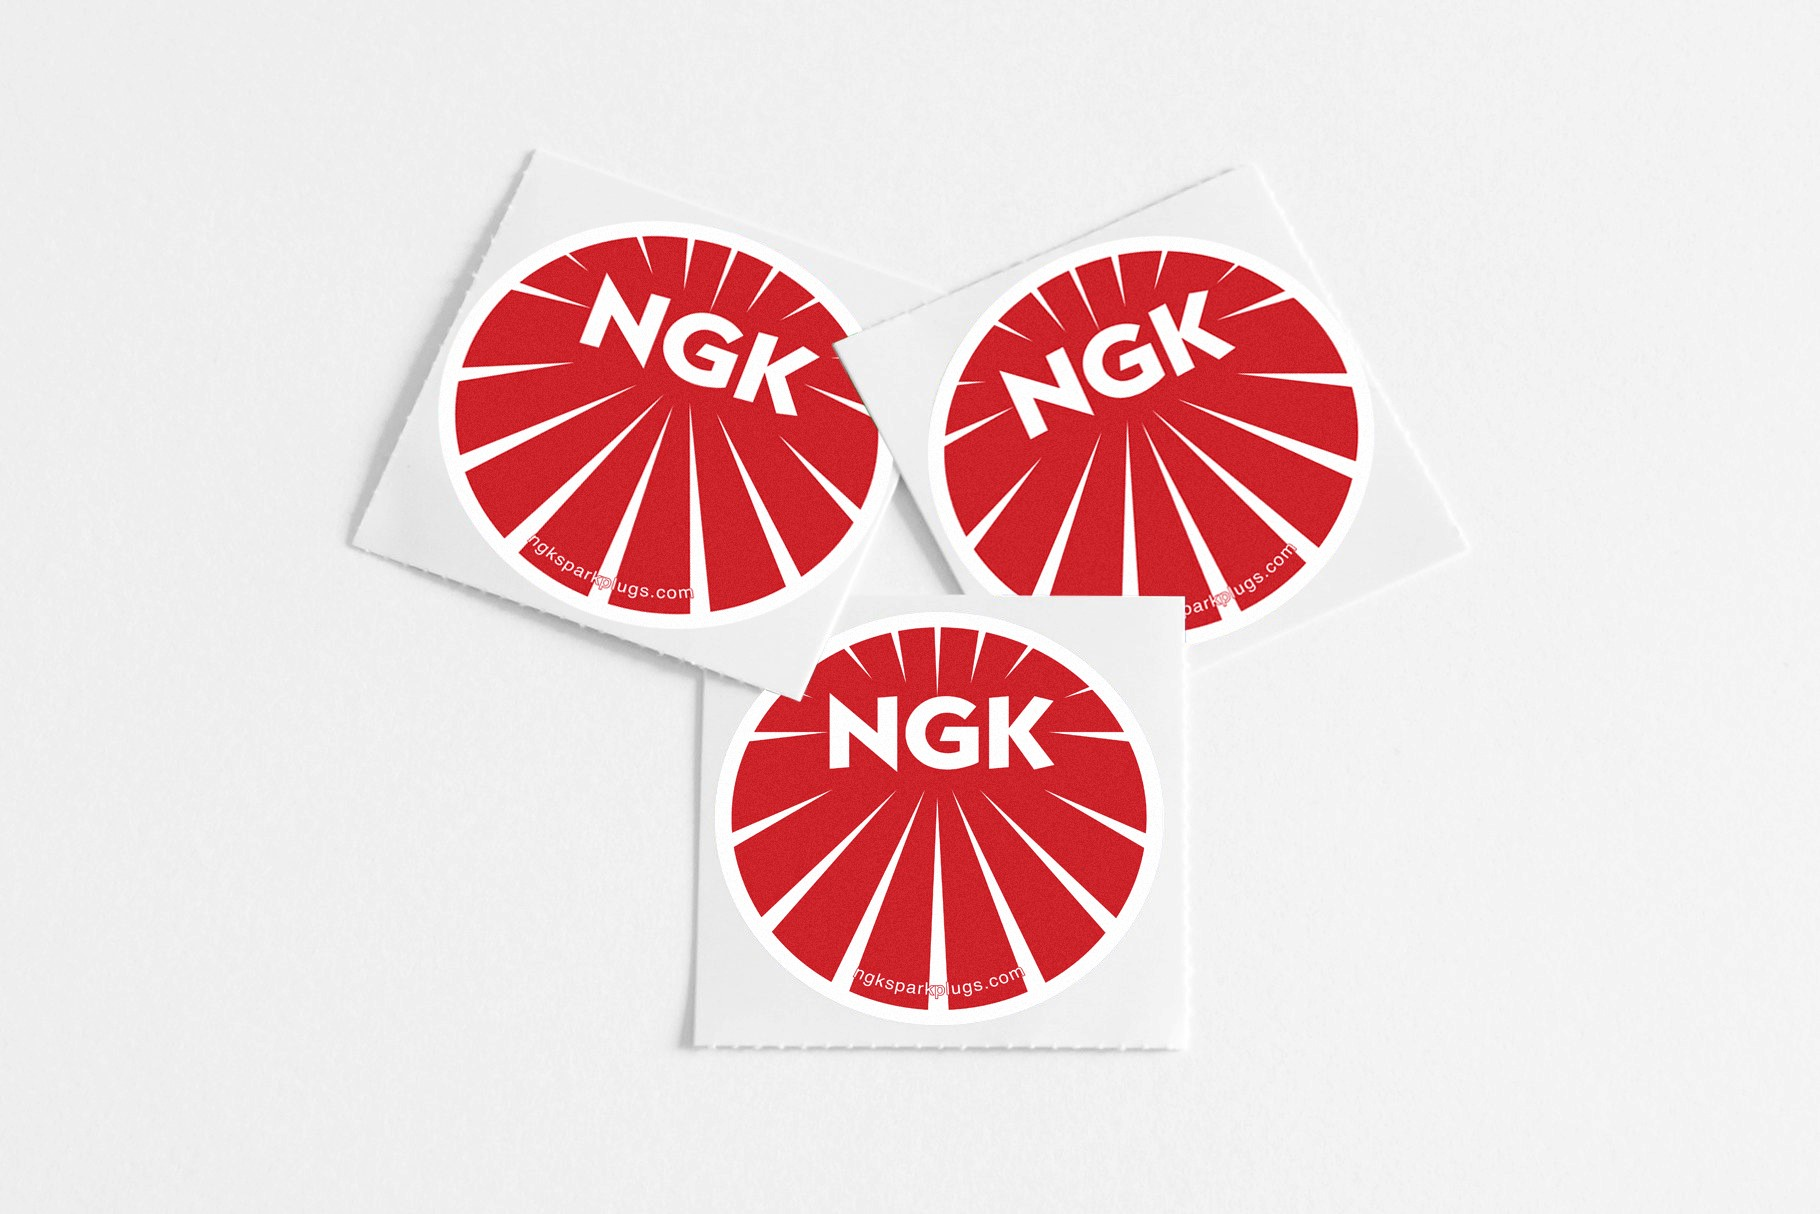 NGK stickers